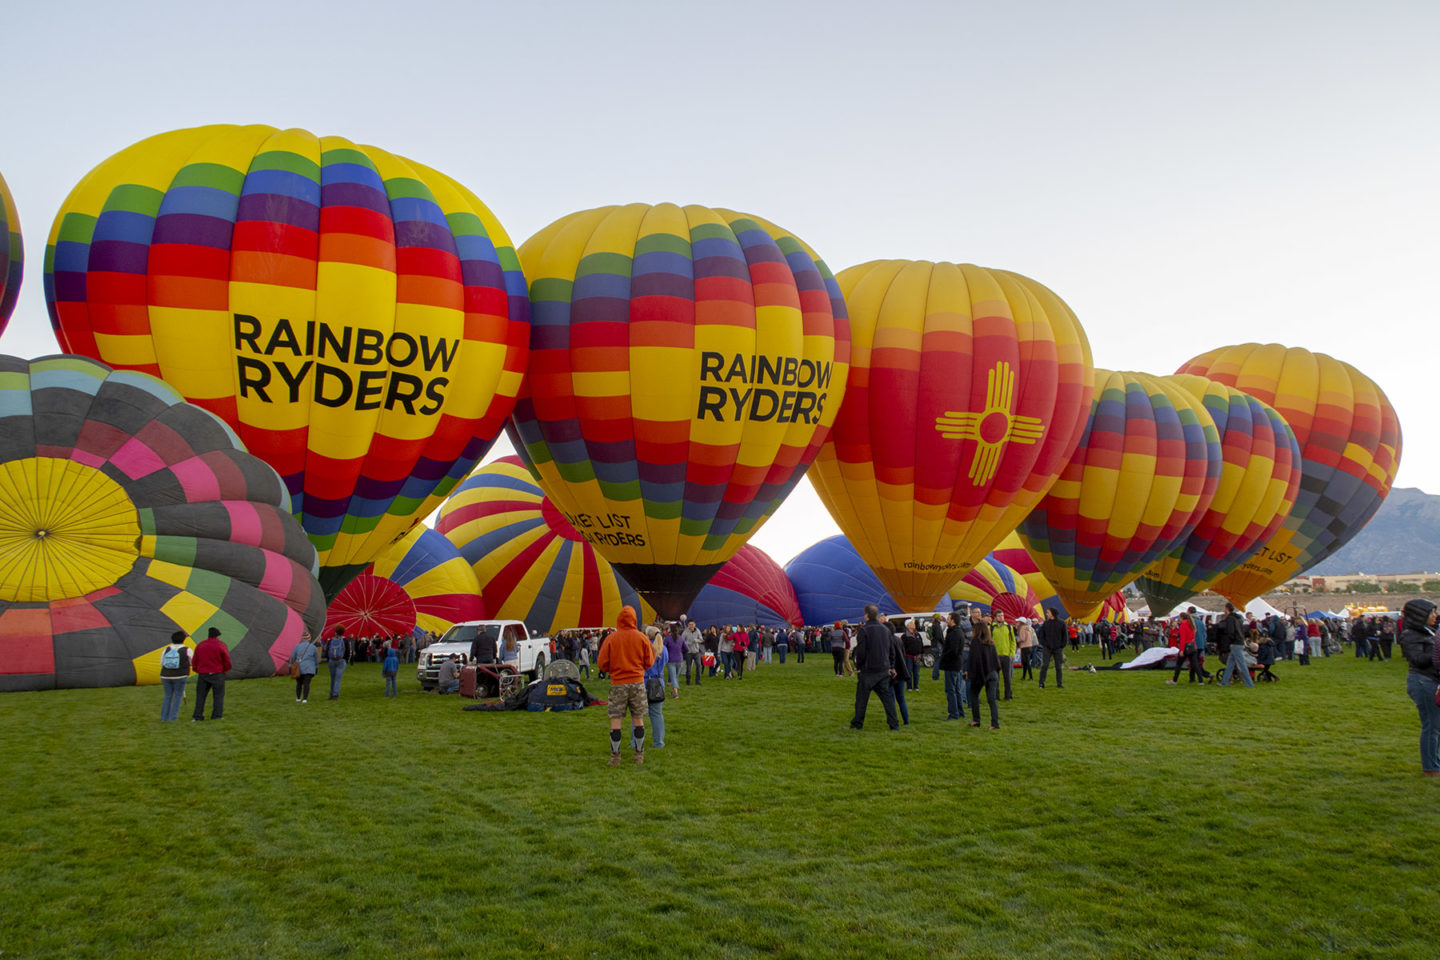 Rainbow Ryders balloons at Albuquerque Balloon Fiesta in New Mexico